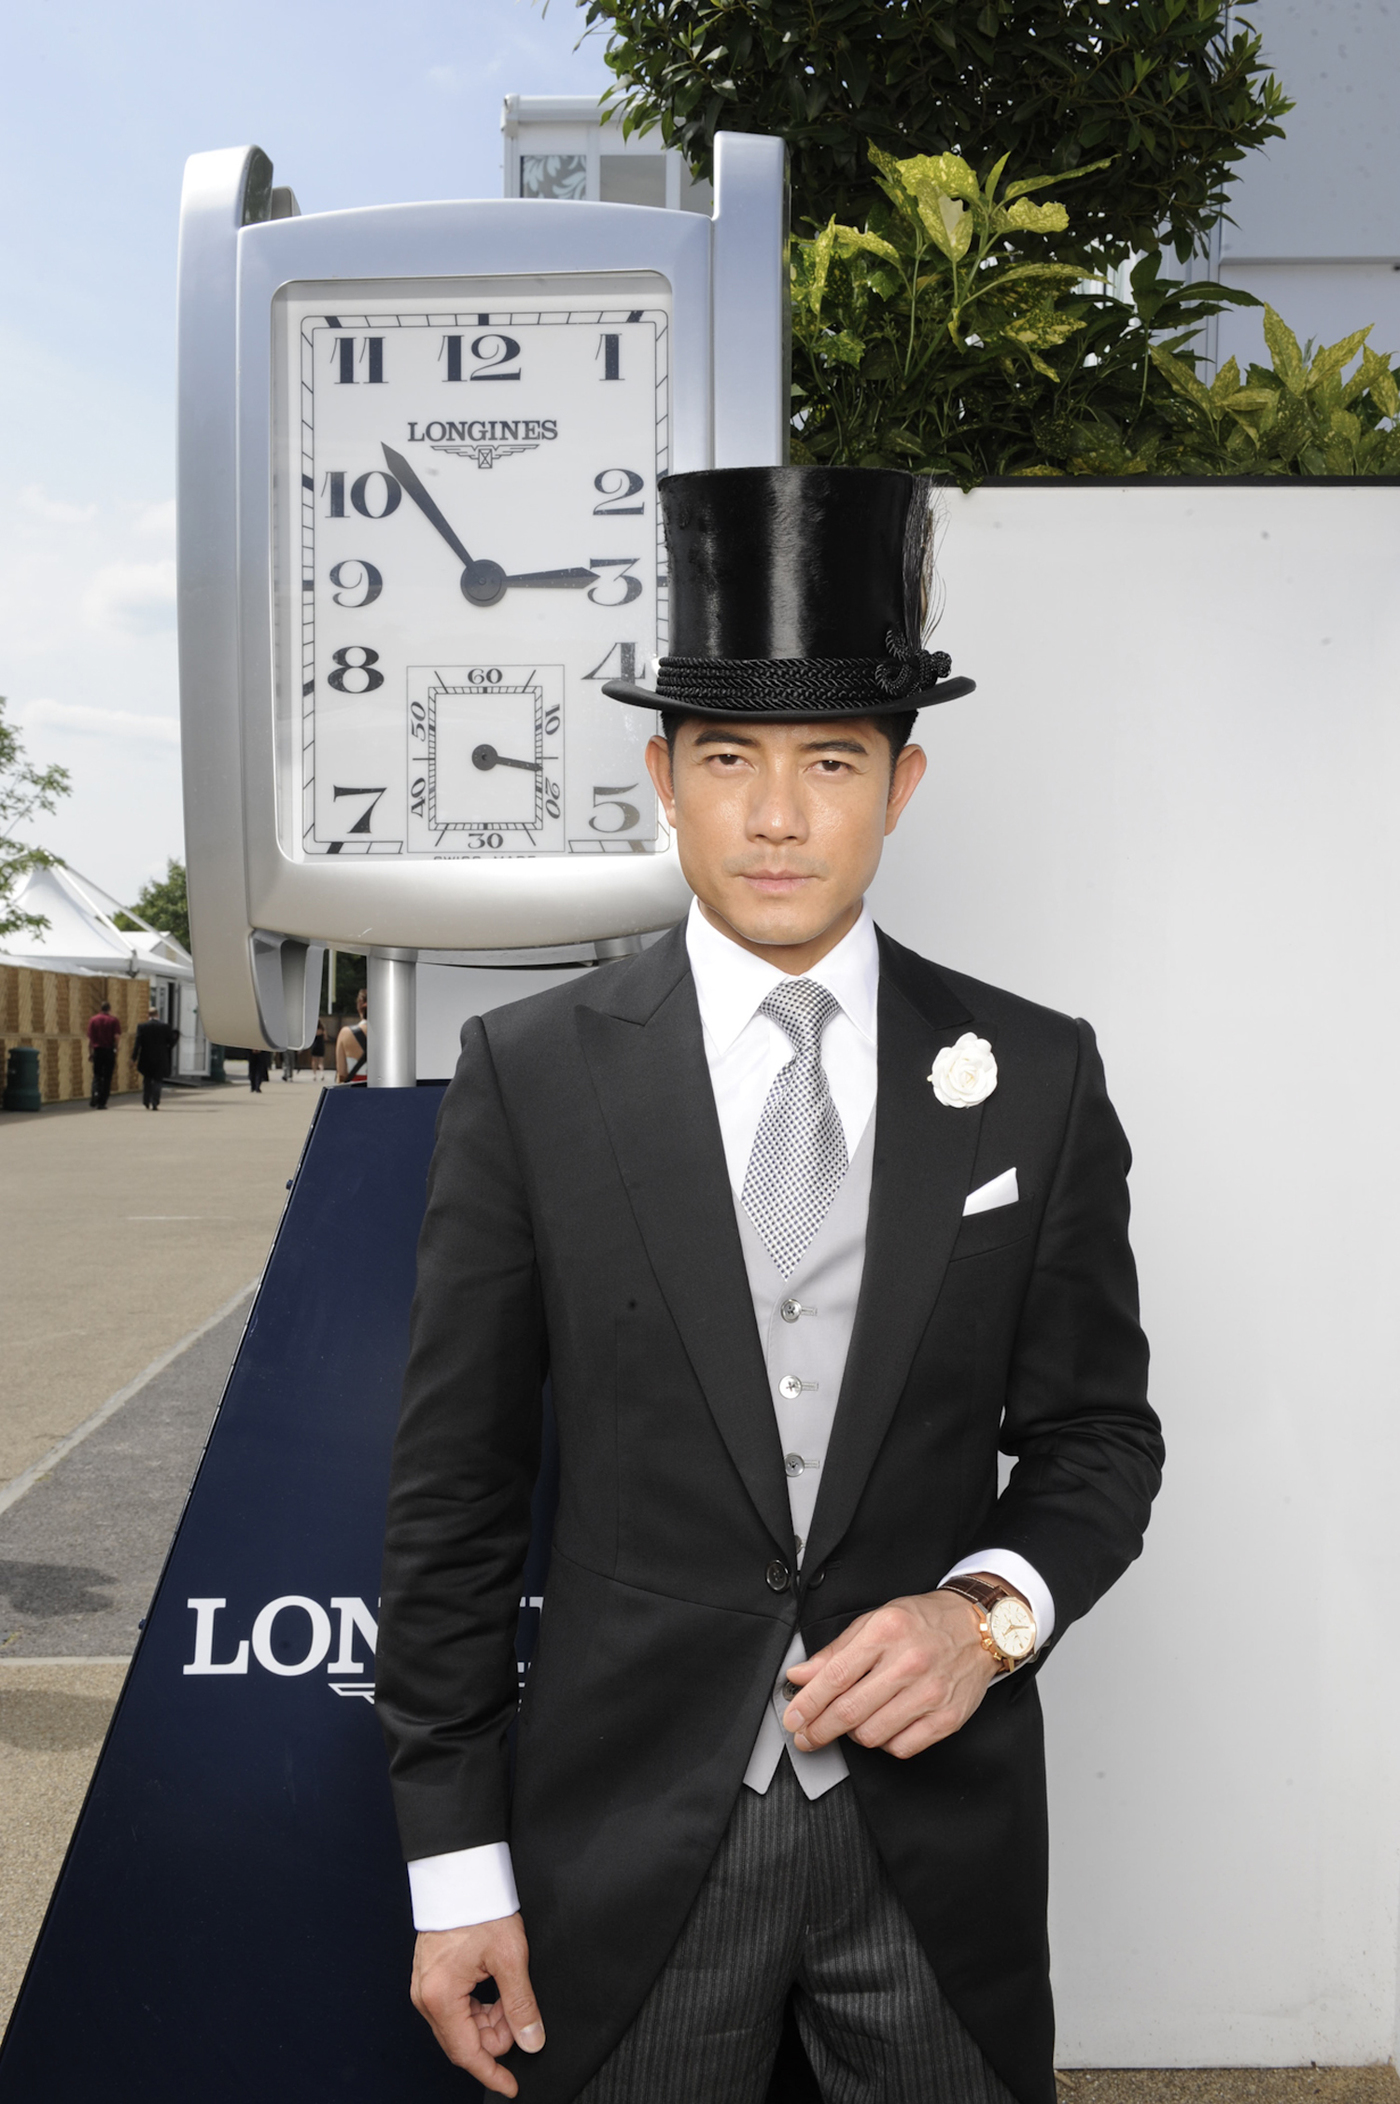 Longines Flat Racing Event: A day of glamour at Ascot with Aaron Kwok, Longines ambassador of Elegance 6